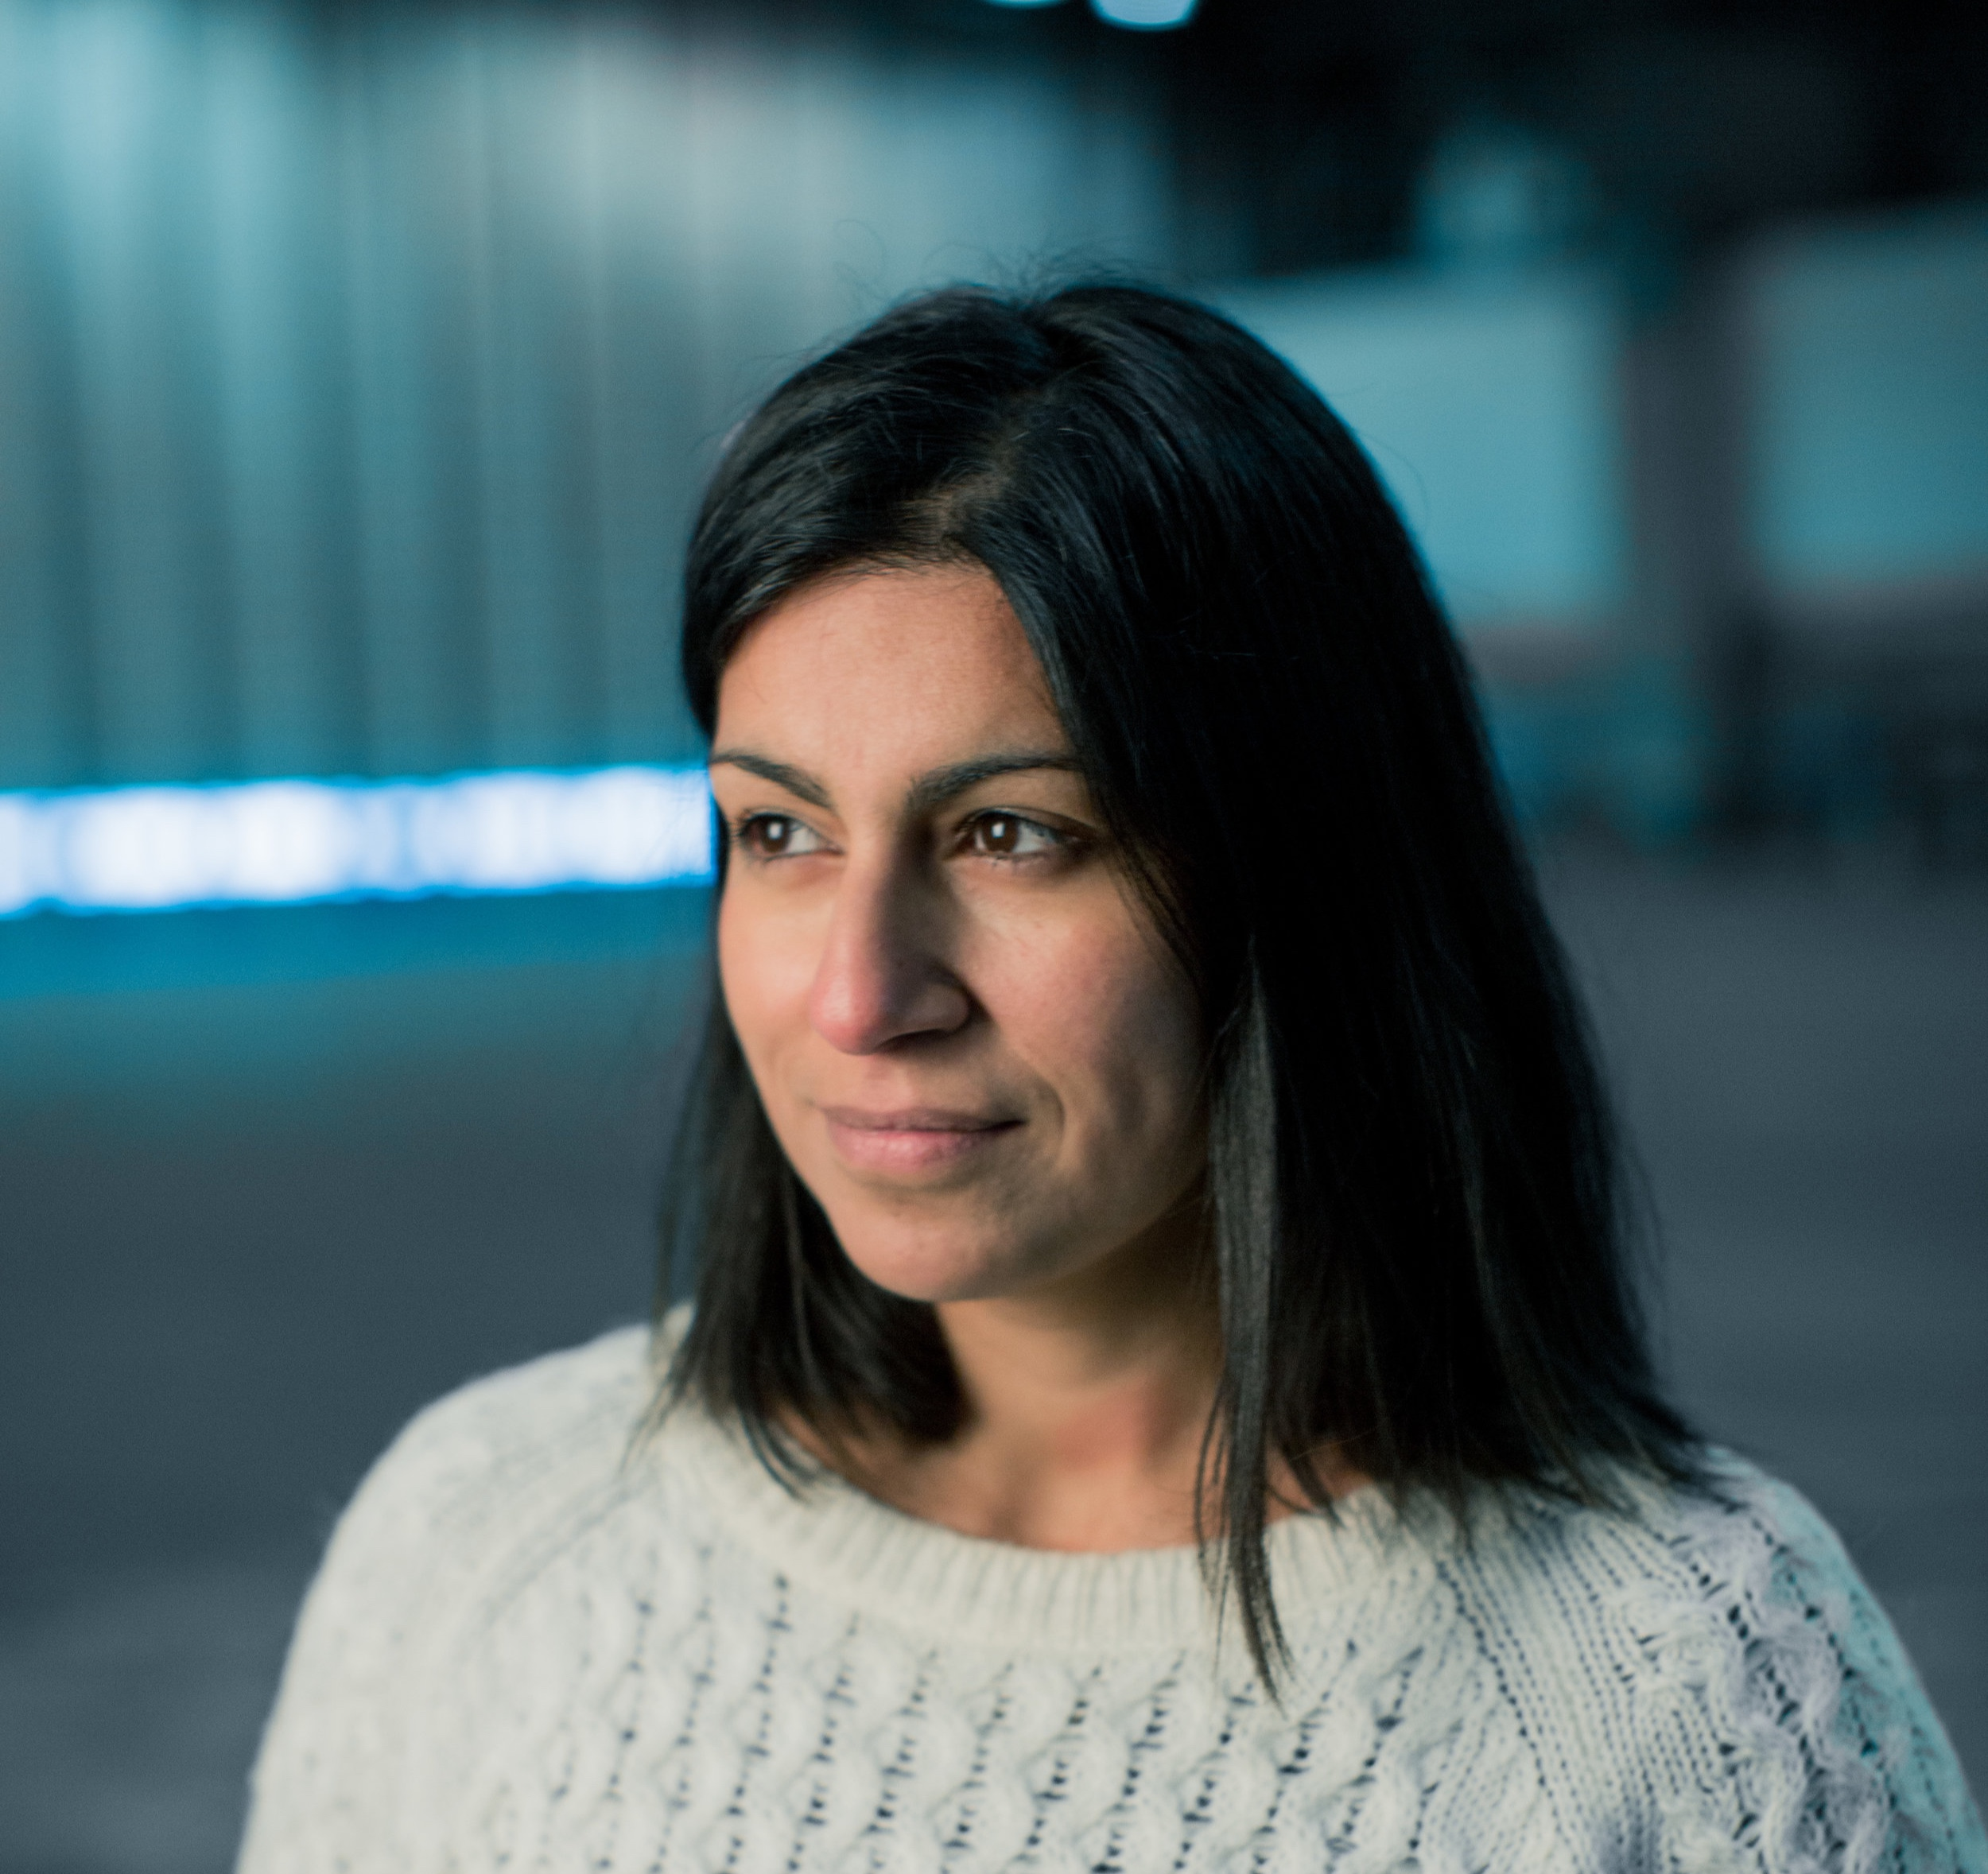 Angie Bual - Angie is the Artistic Director of Trigger. Angie is the winner of the Creative Producer Arts Foundation Award.She is trustee for Without Walls, and is a member of the London Area Council of Arts Council England. Angie is a Clore Fellow (Theatre).Email: angie@triggerstuff.co.uk